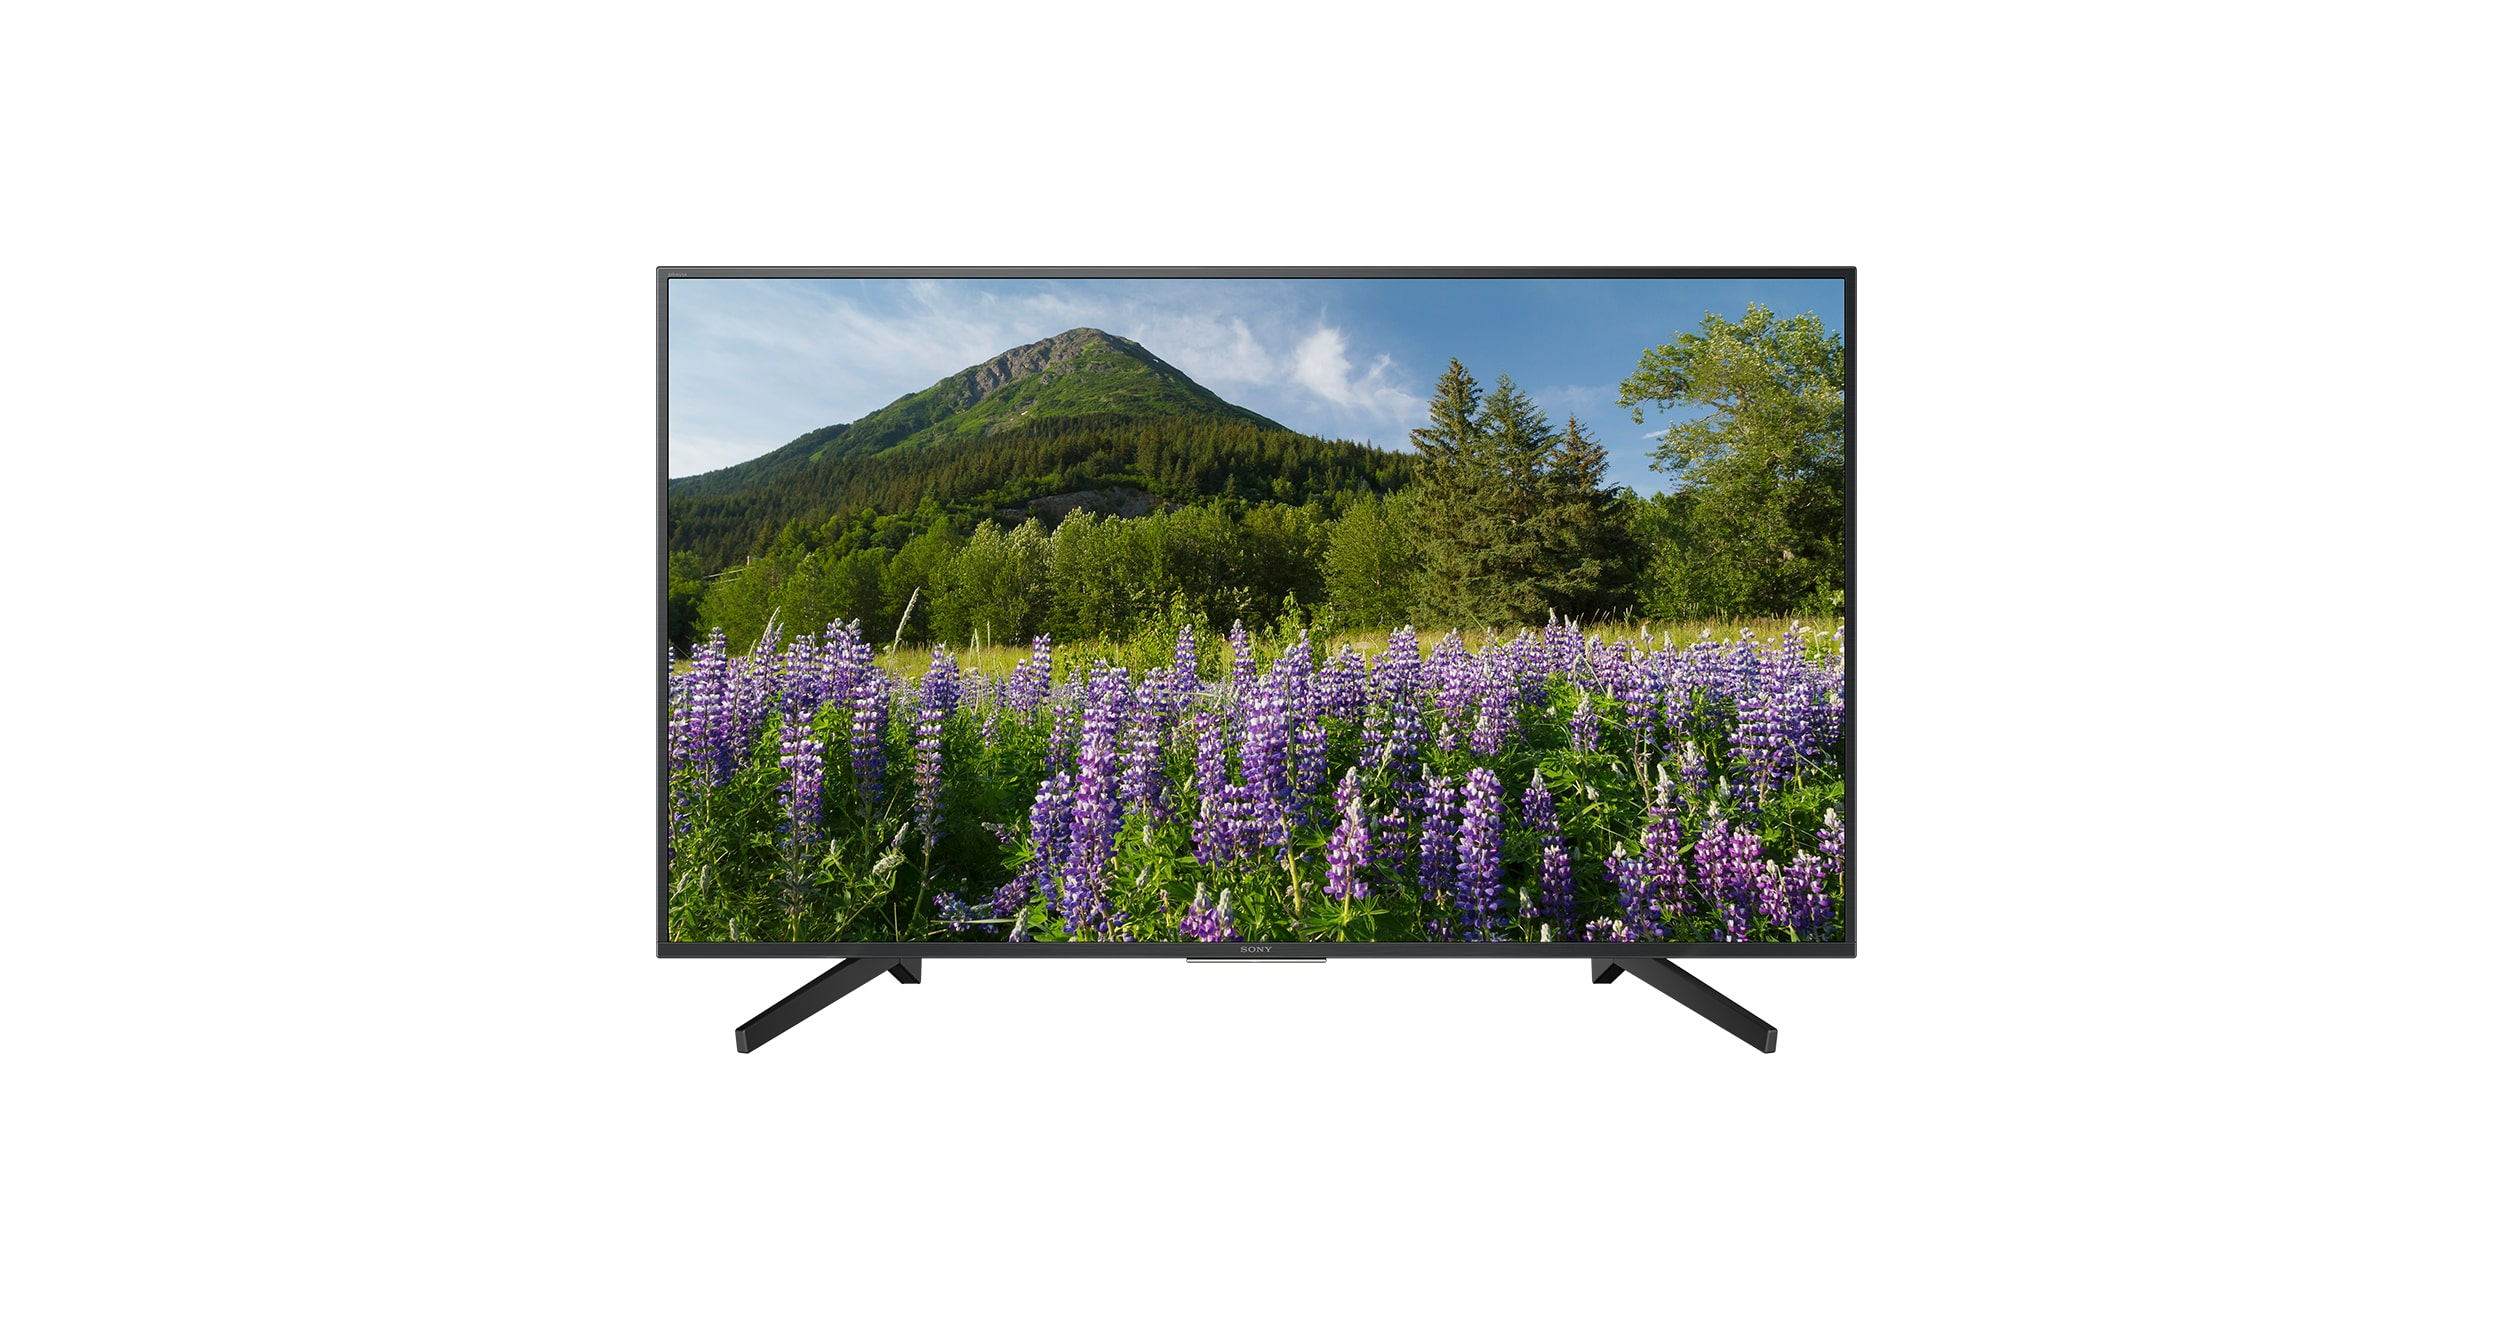 de21fbf9b X7000F Series Specifications | Televisions | Sony MY